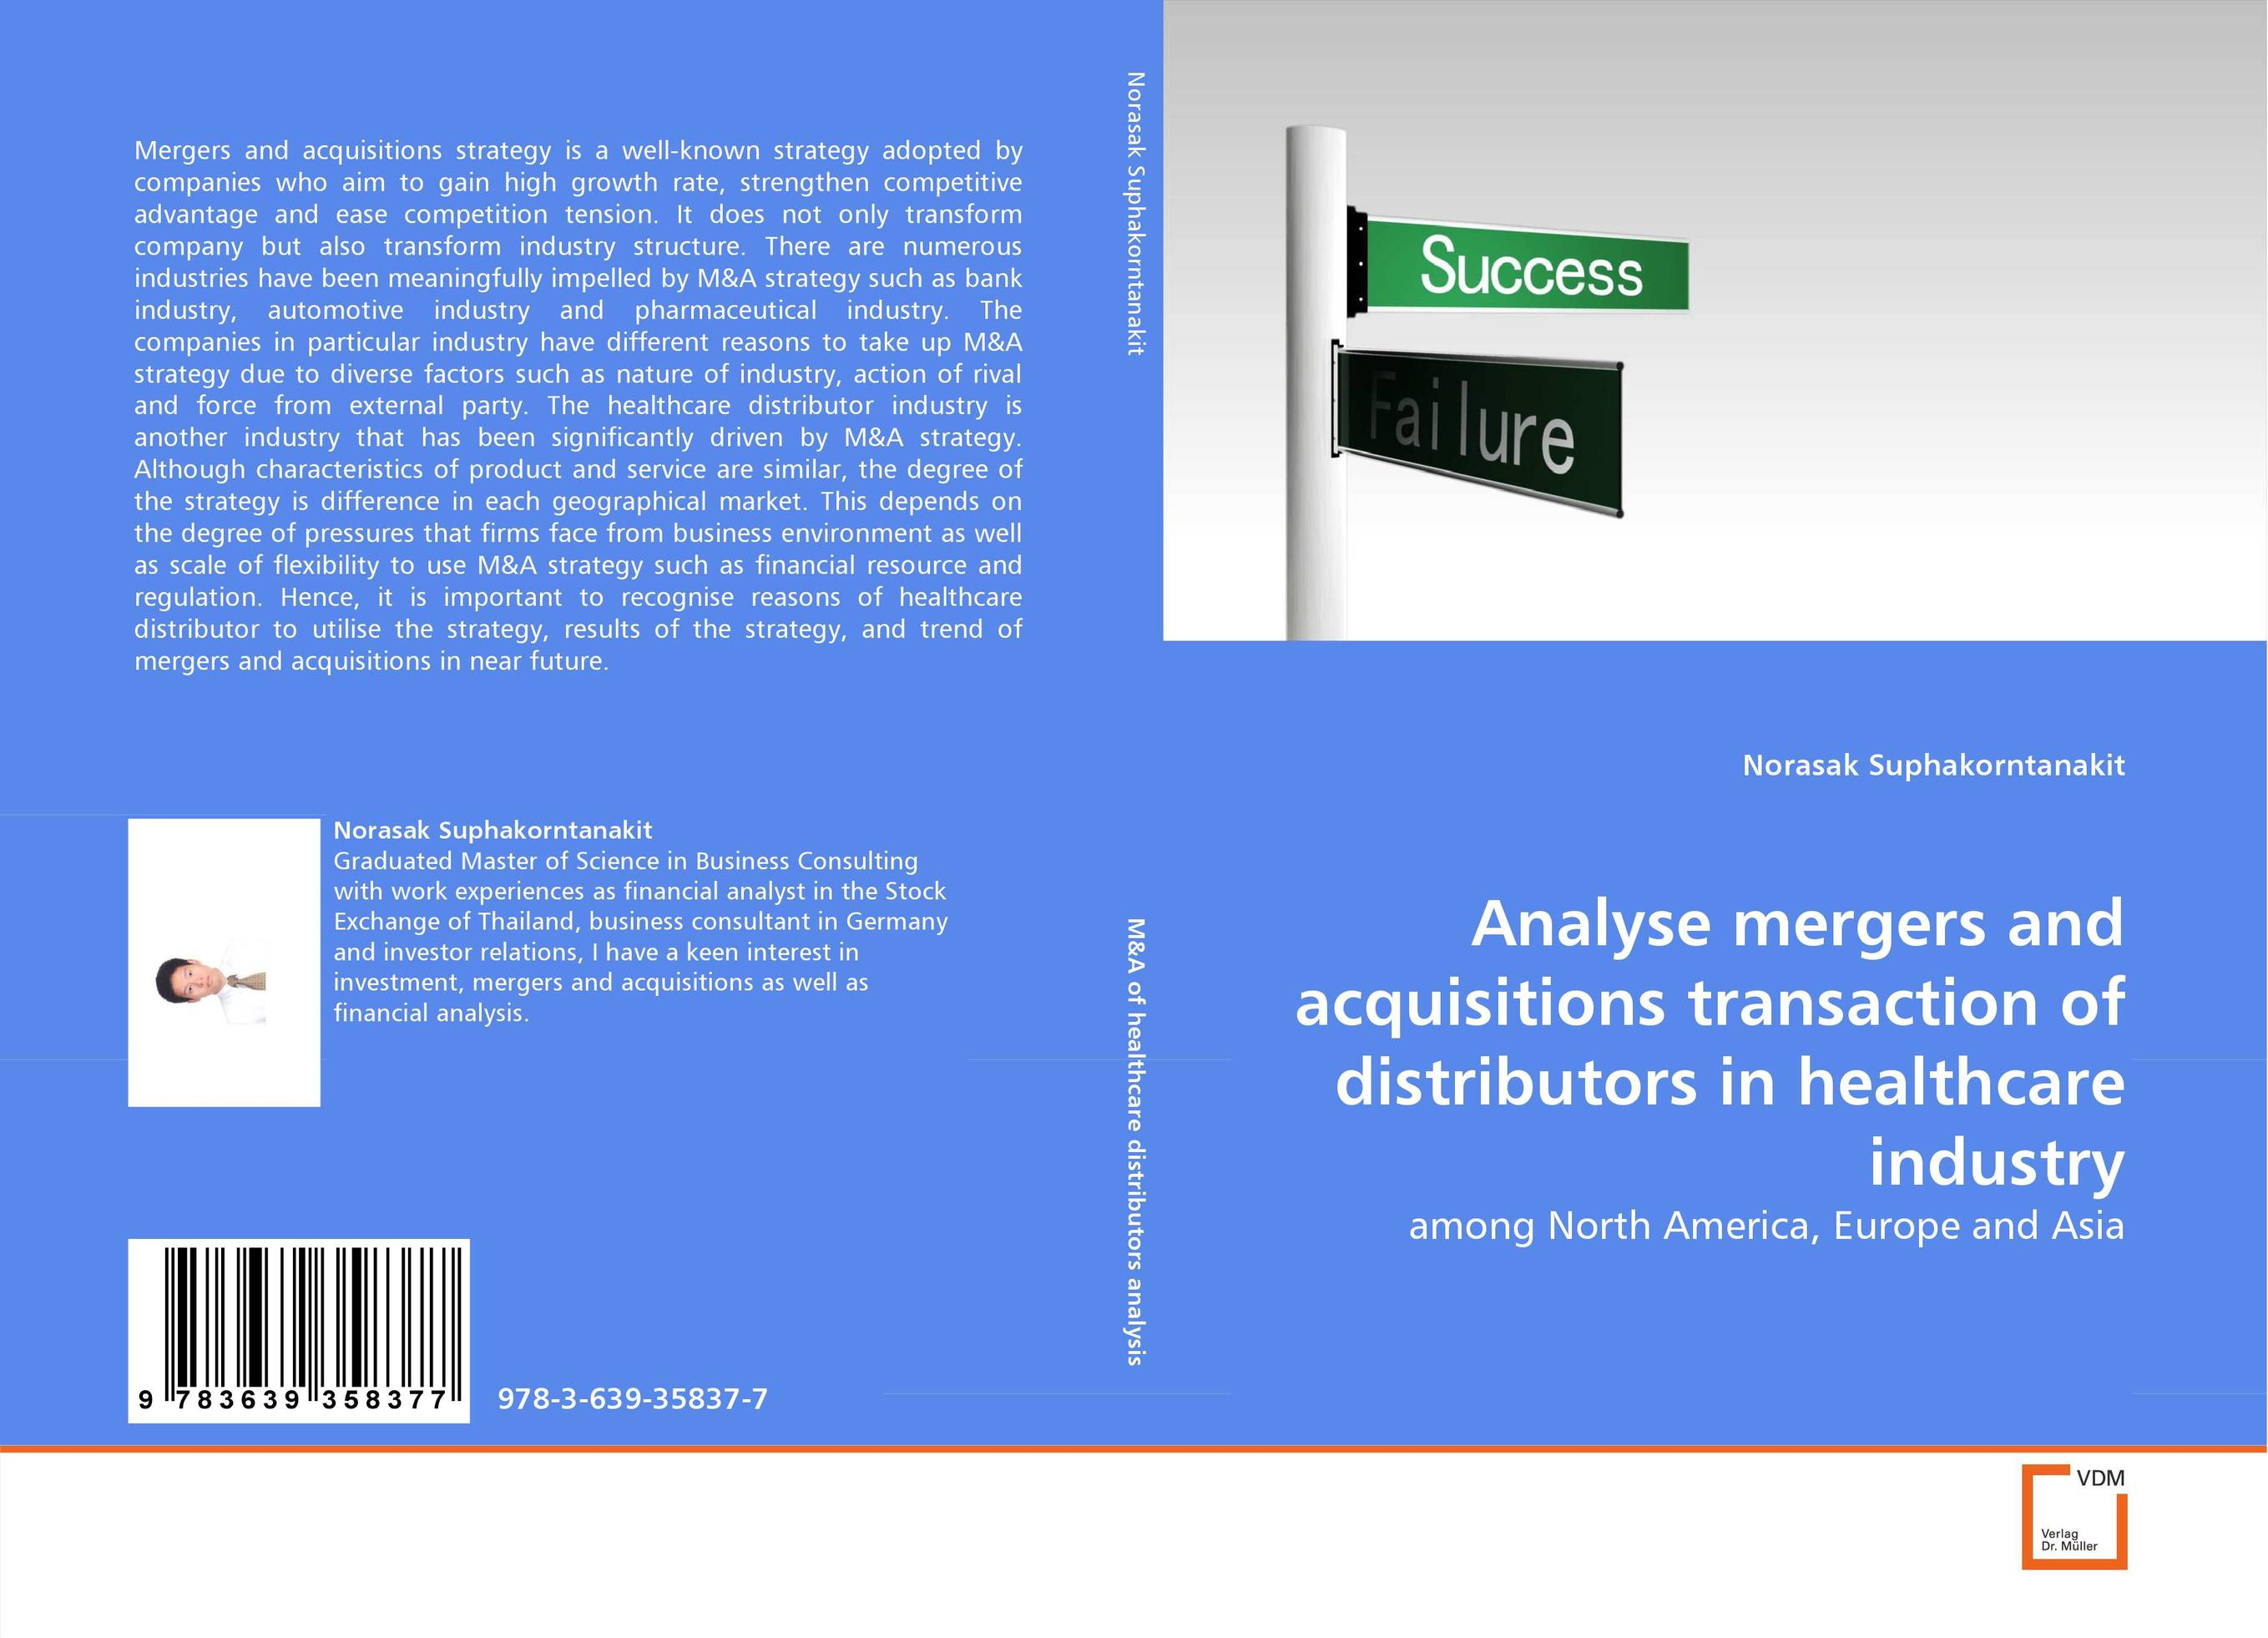 Analyse mergers and acquisitions transaction of distributors in healthcare industry the corporate mergers